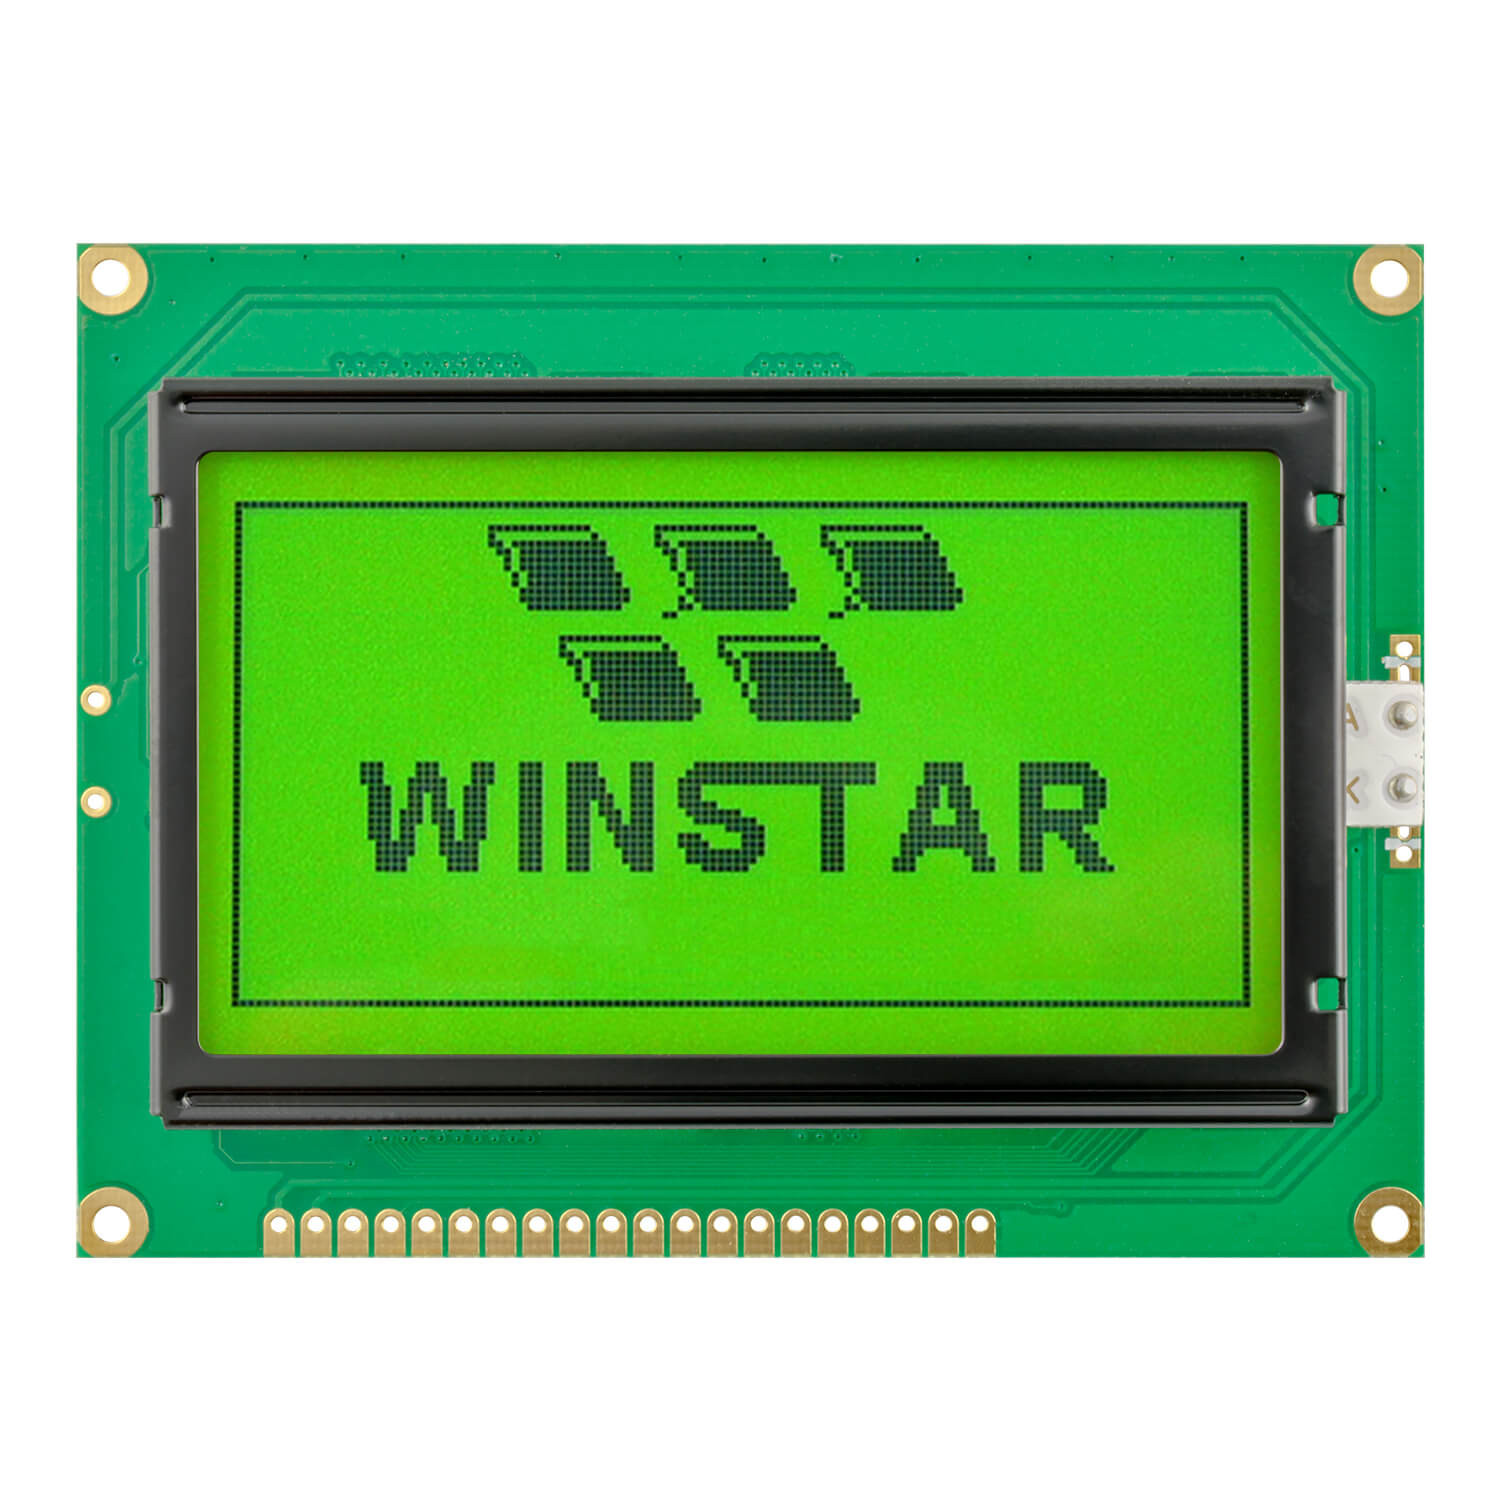 WG12864A-YYH-T#N - Graphic LCD display from Winstar Co. (128x64, transflective, positive STN, yellowgreen background, black content)